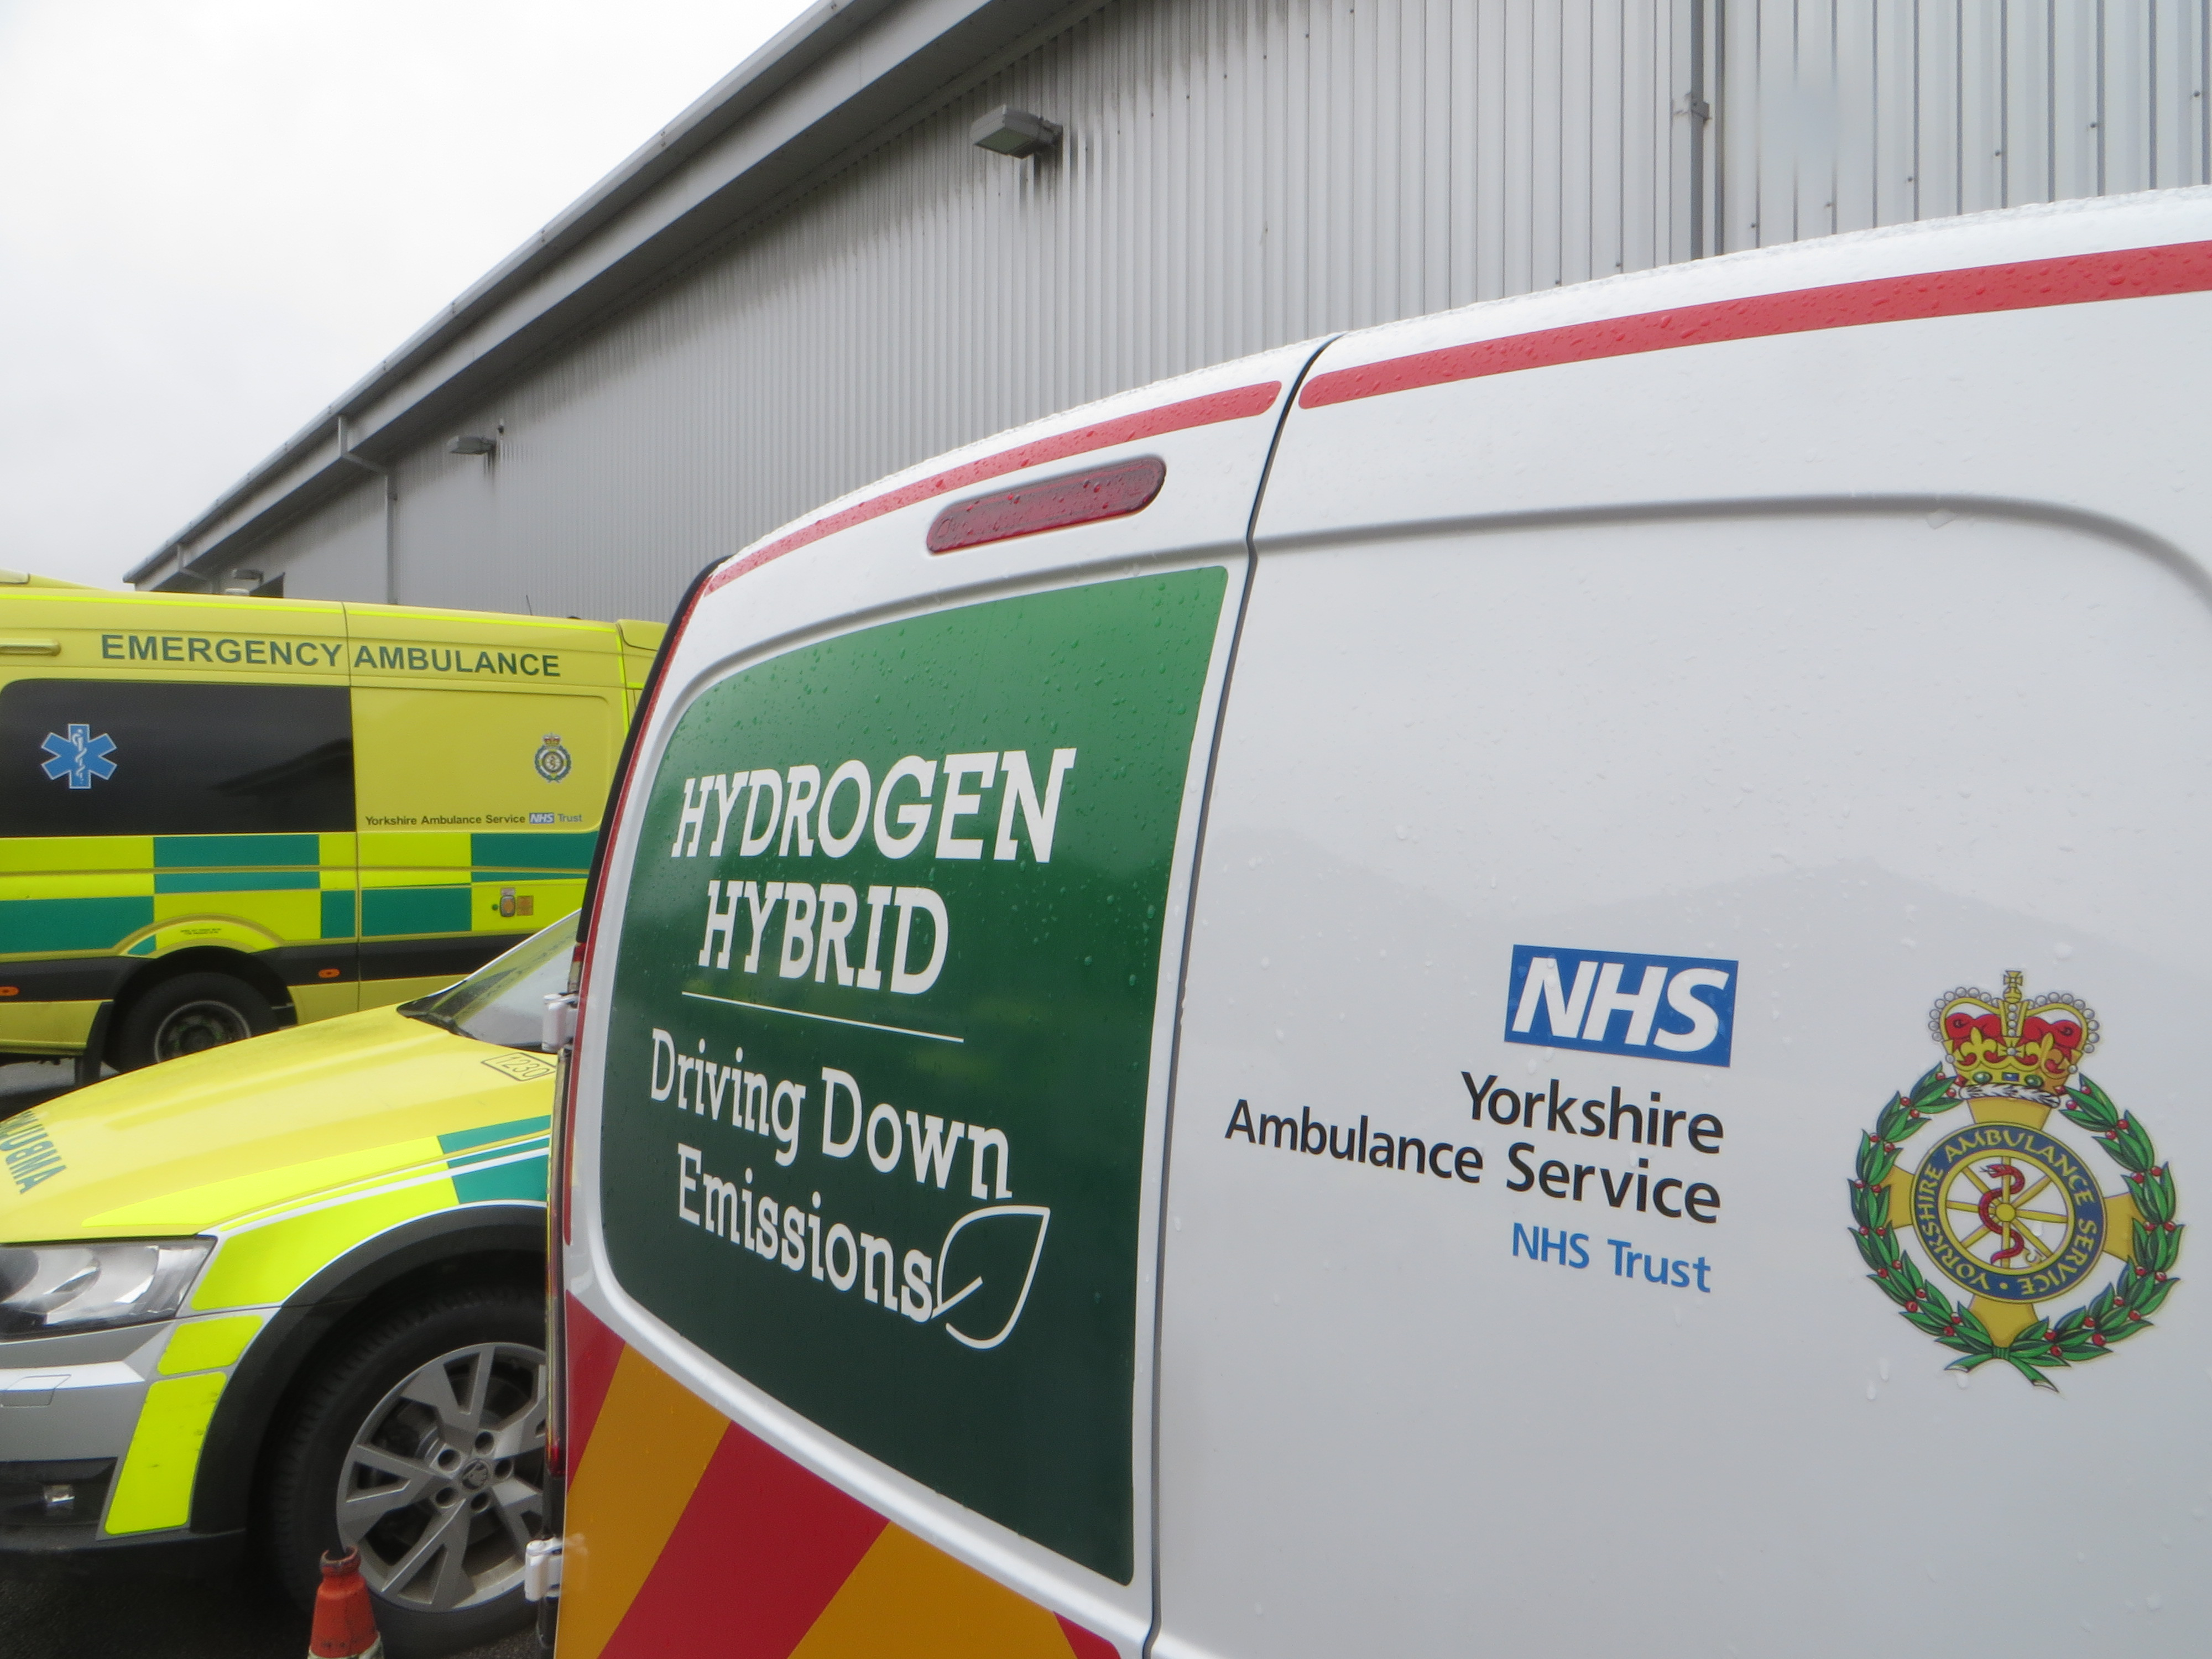 Yorkshire Ambulance Service leads the way with eco-friendly